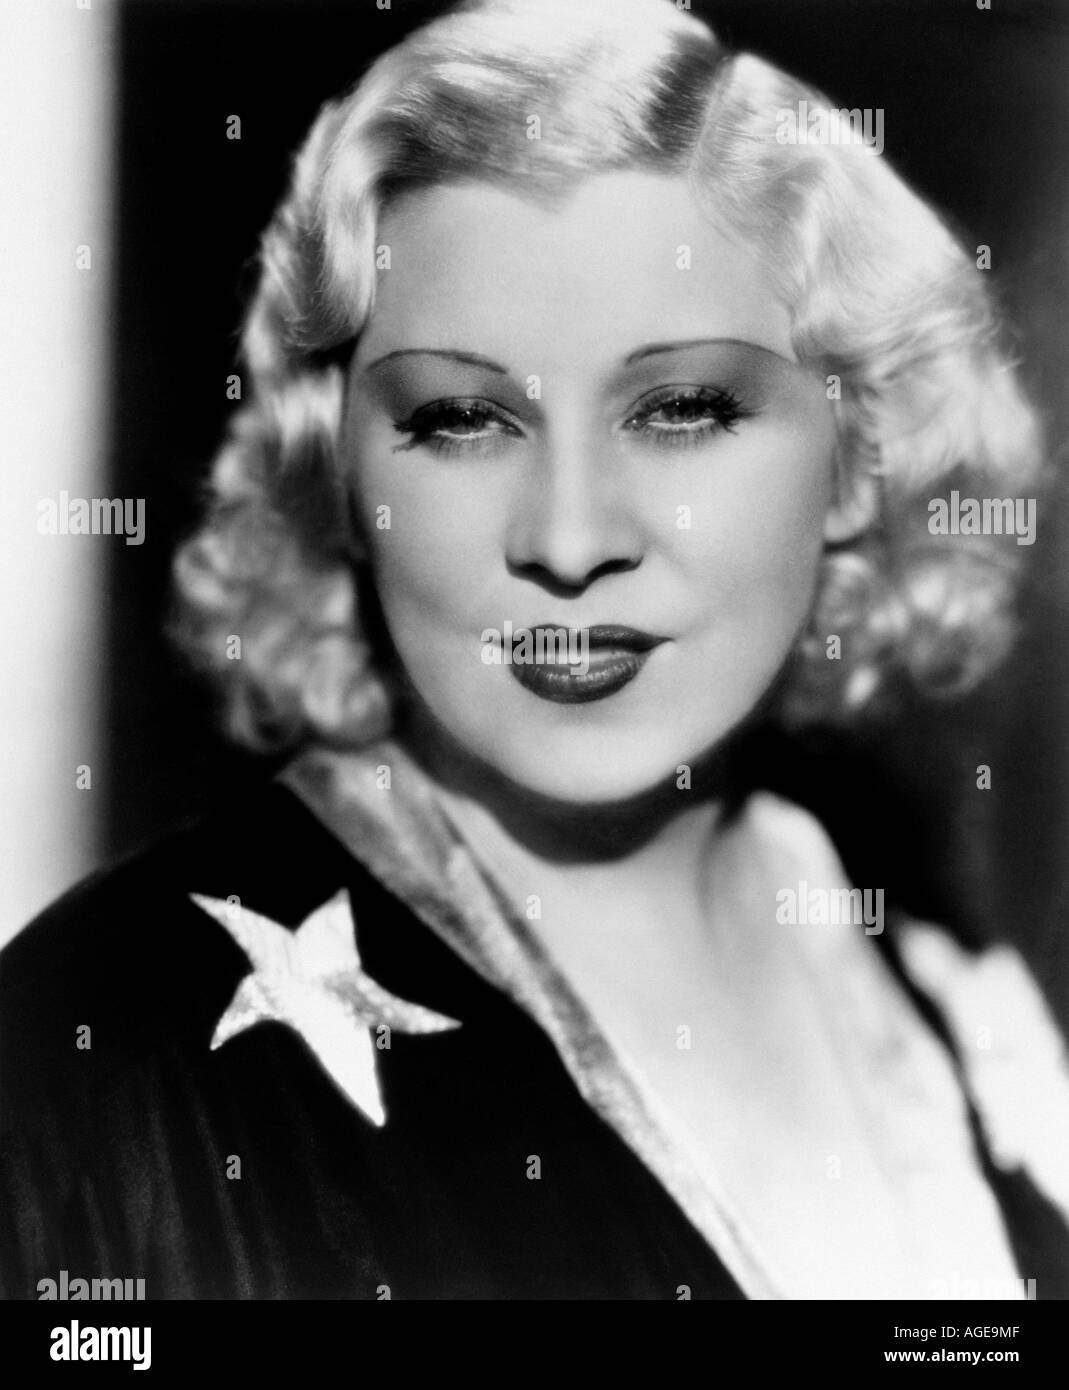 MAE WEST US actress - Stock Image